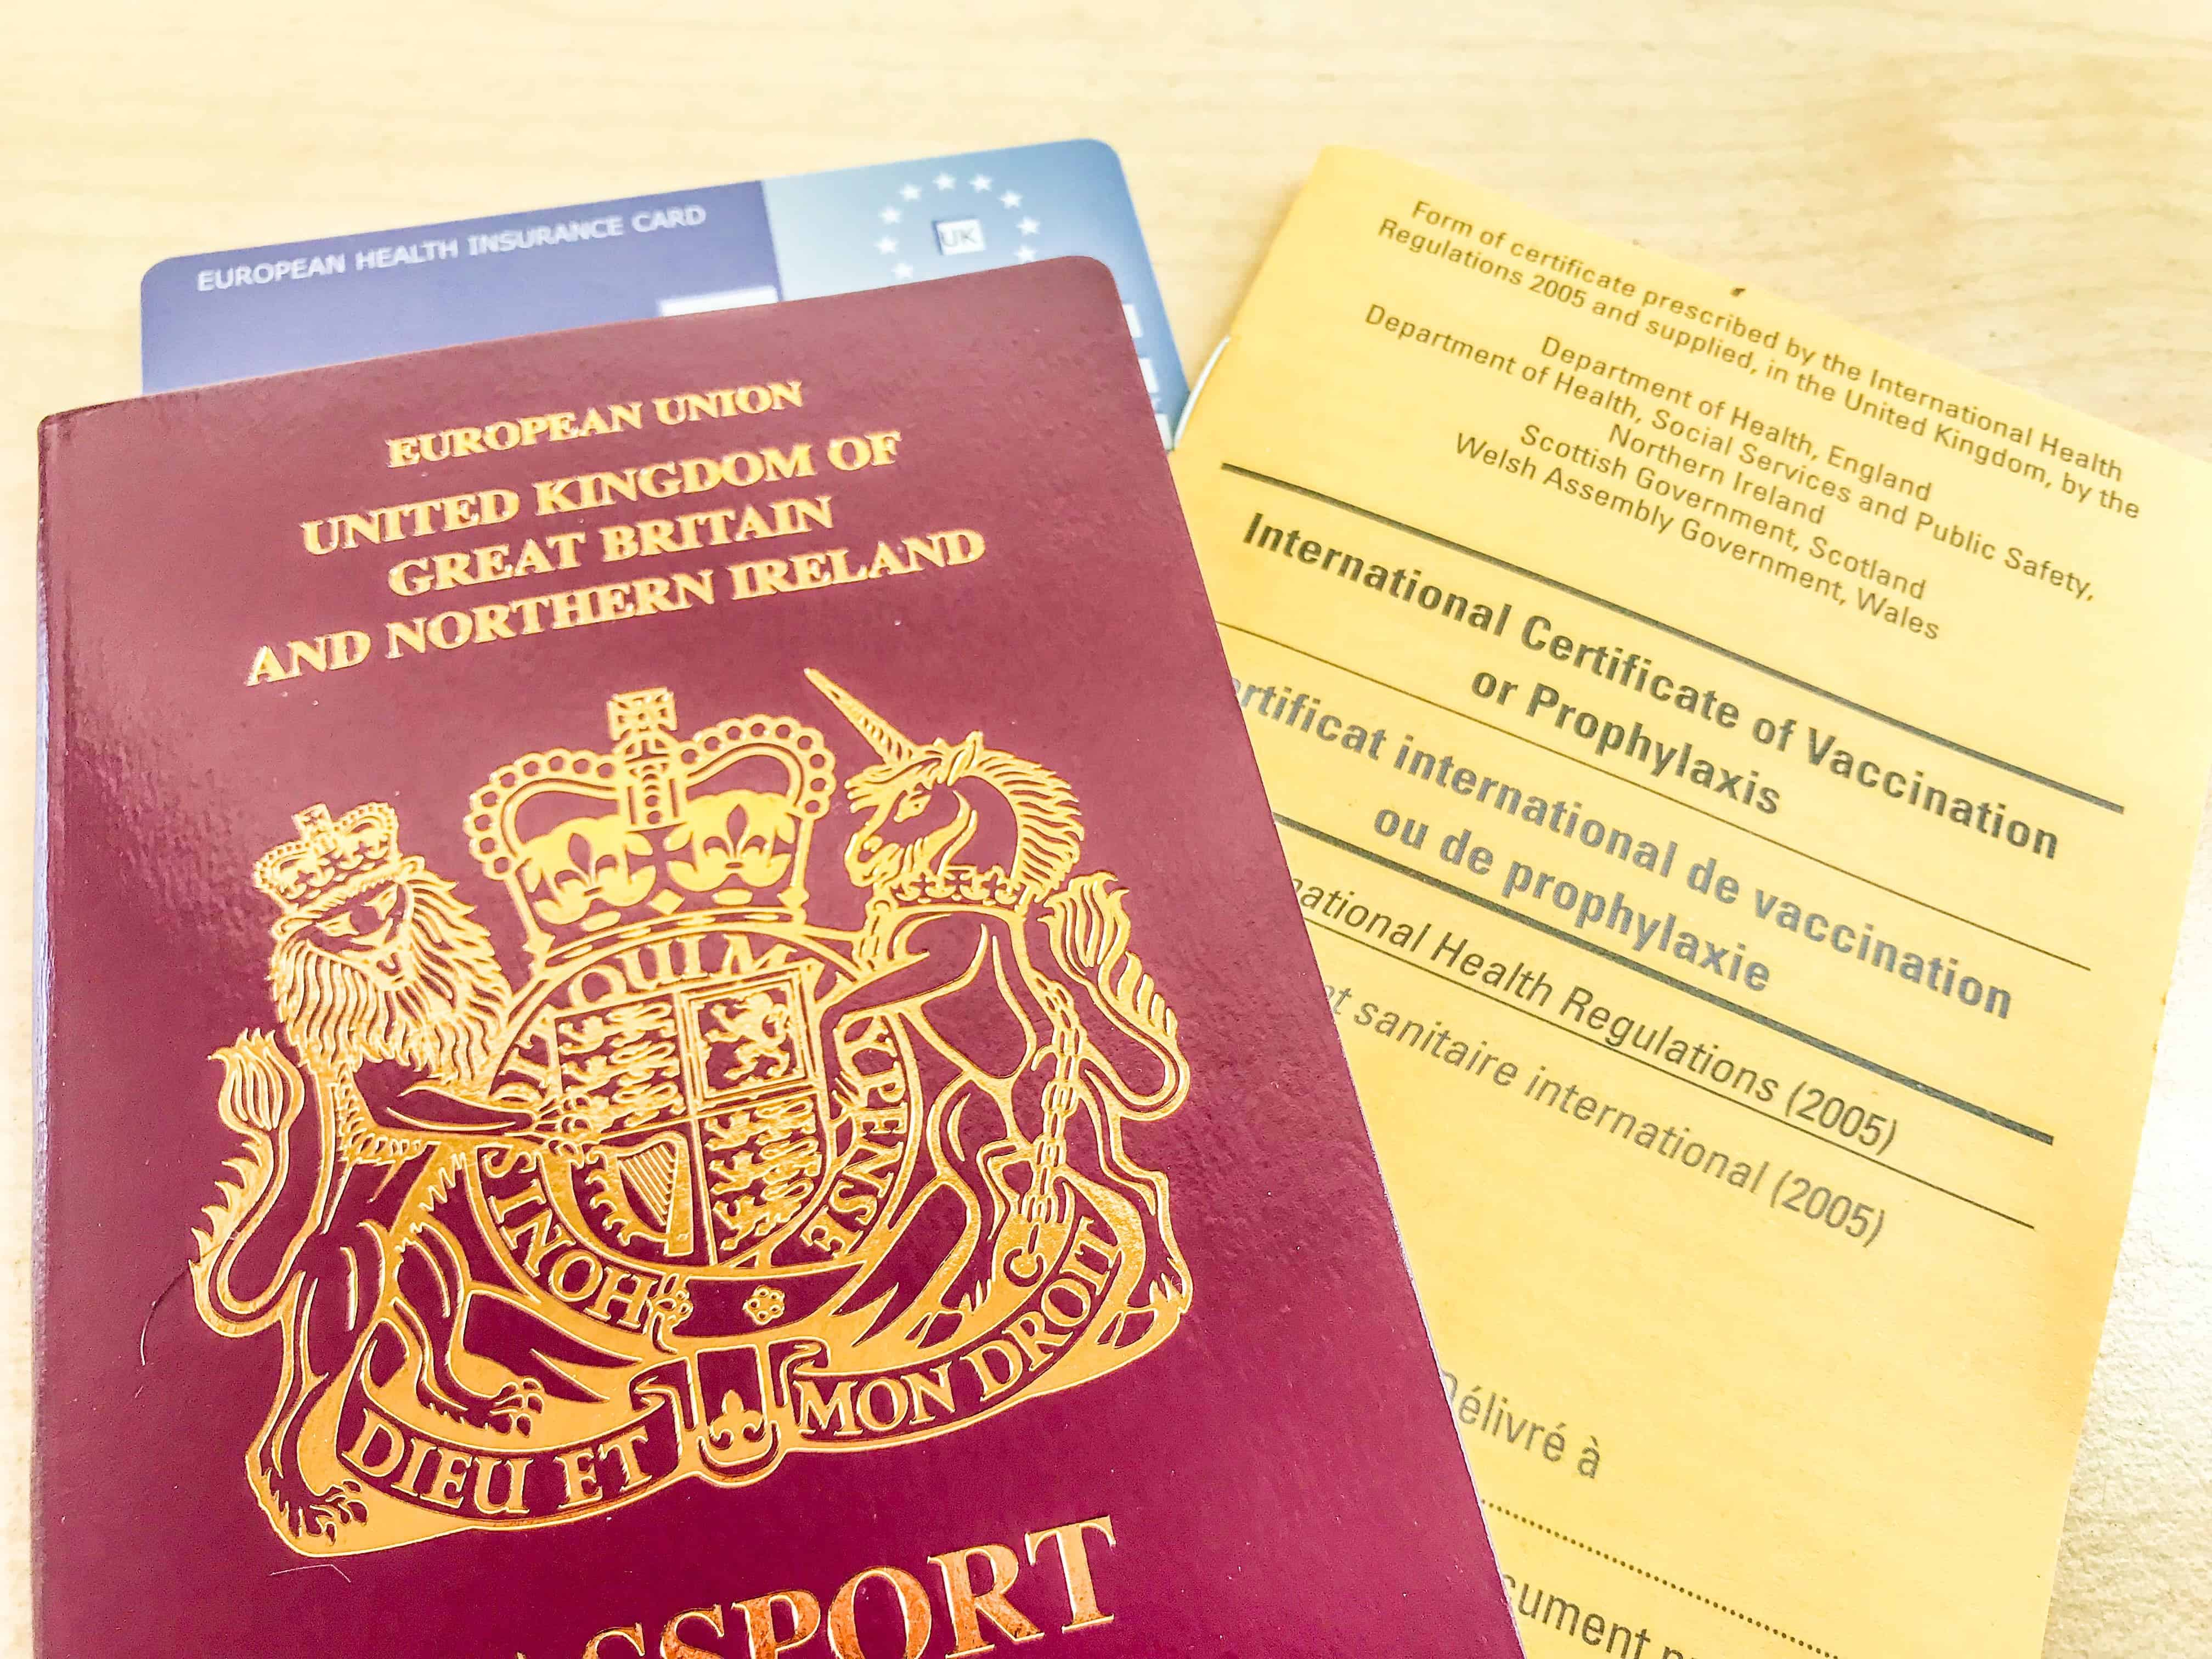 Make sure you get your travel vaccinations recorded in your International Certificate of Vaccination booklet for your own records